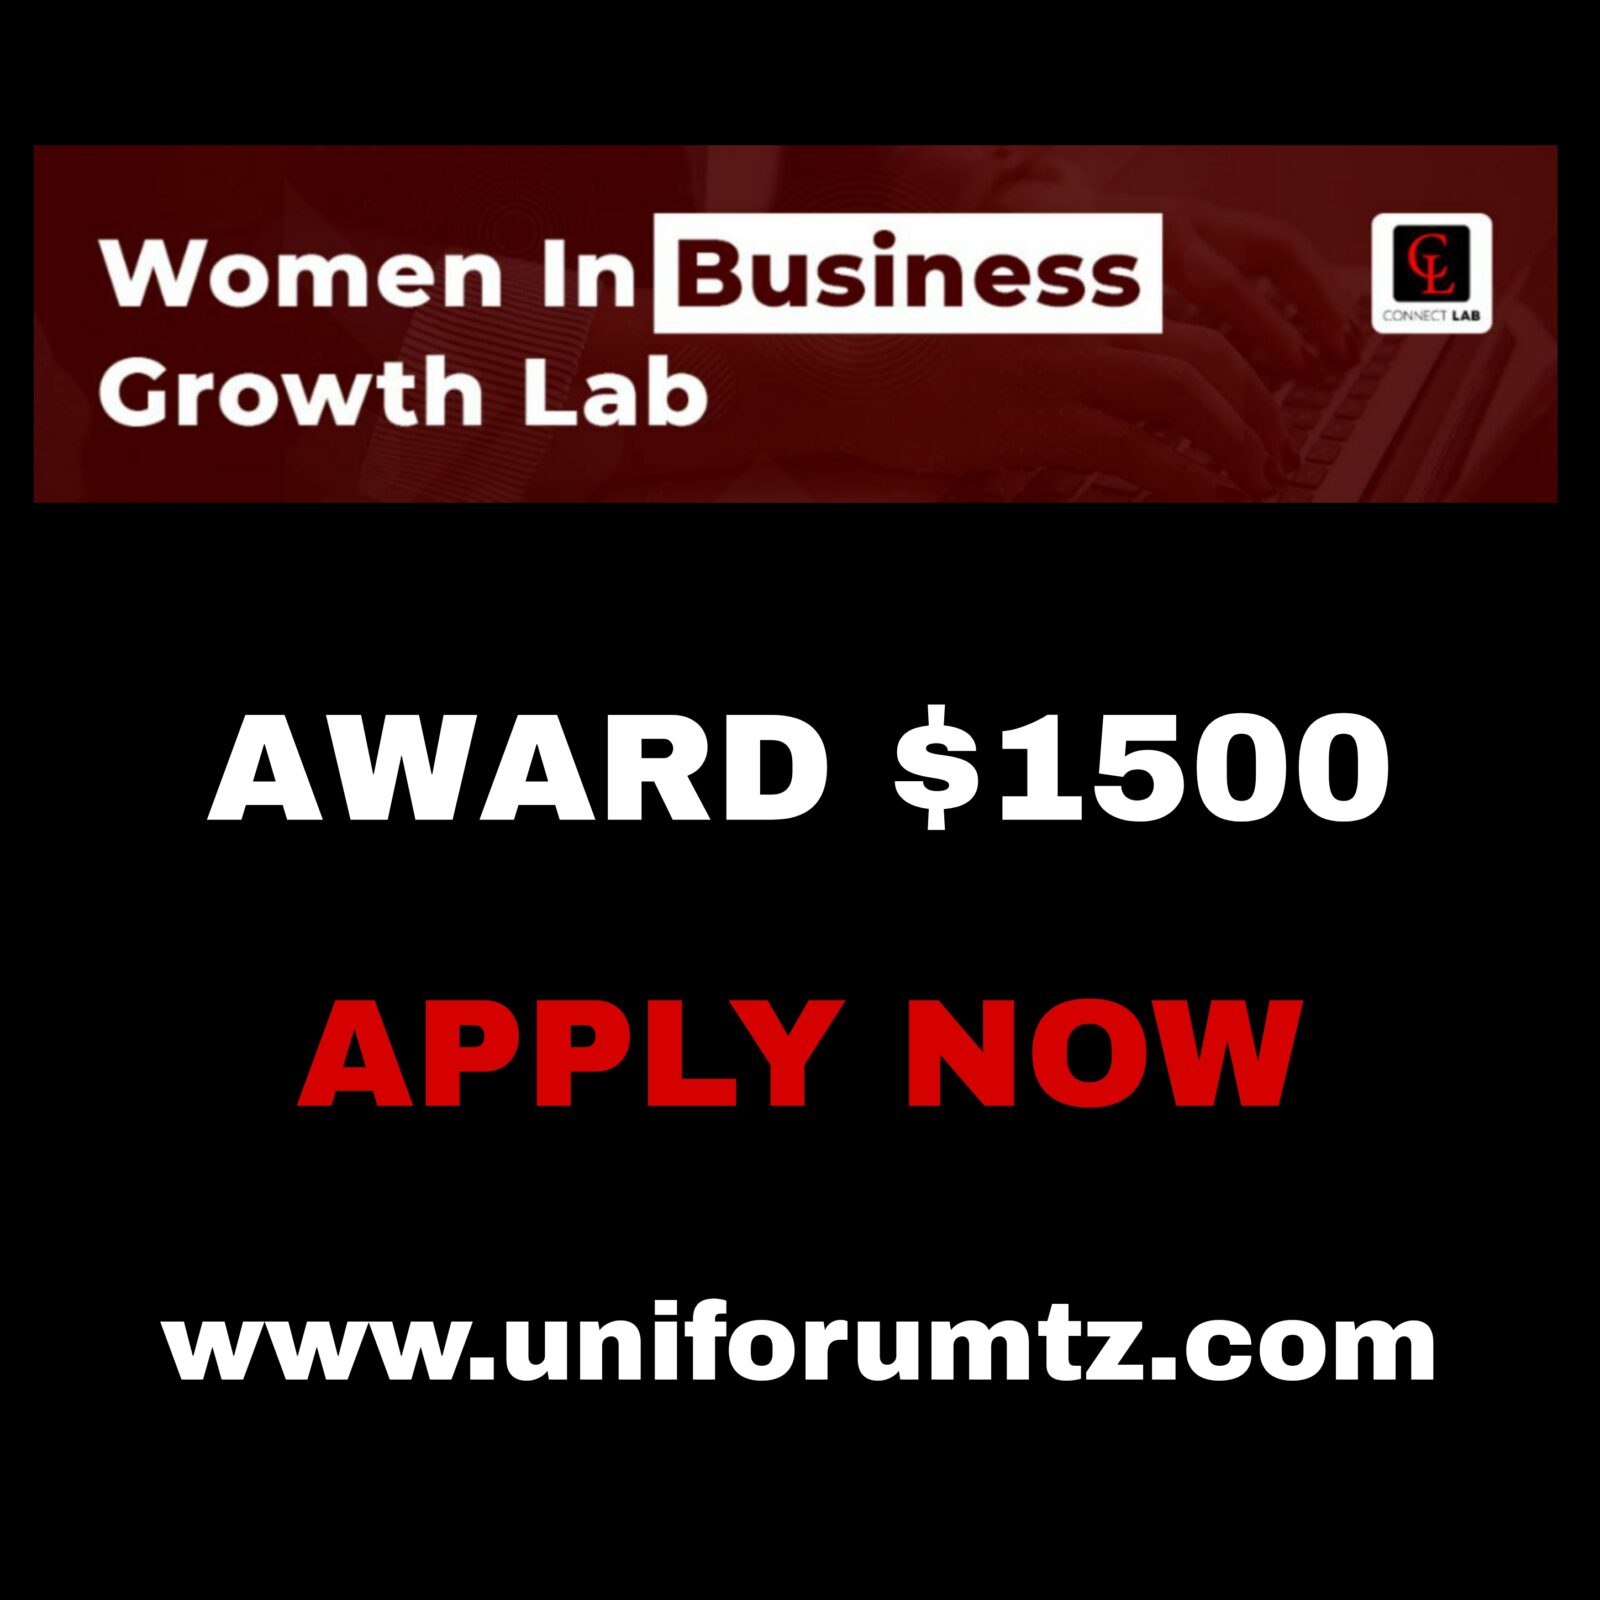 The Women in Business Growth Lab